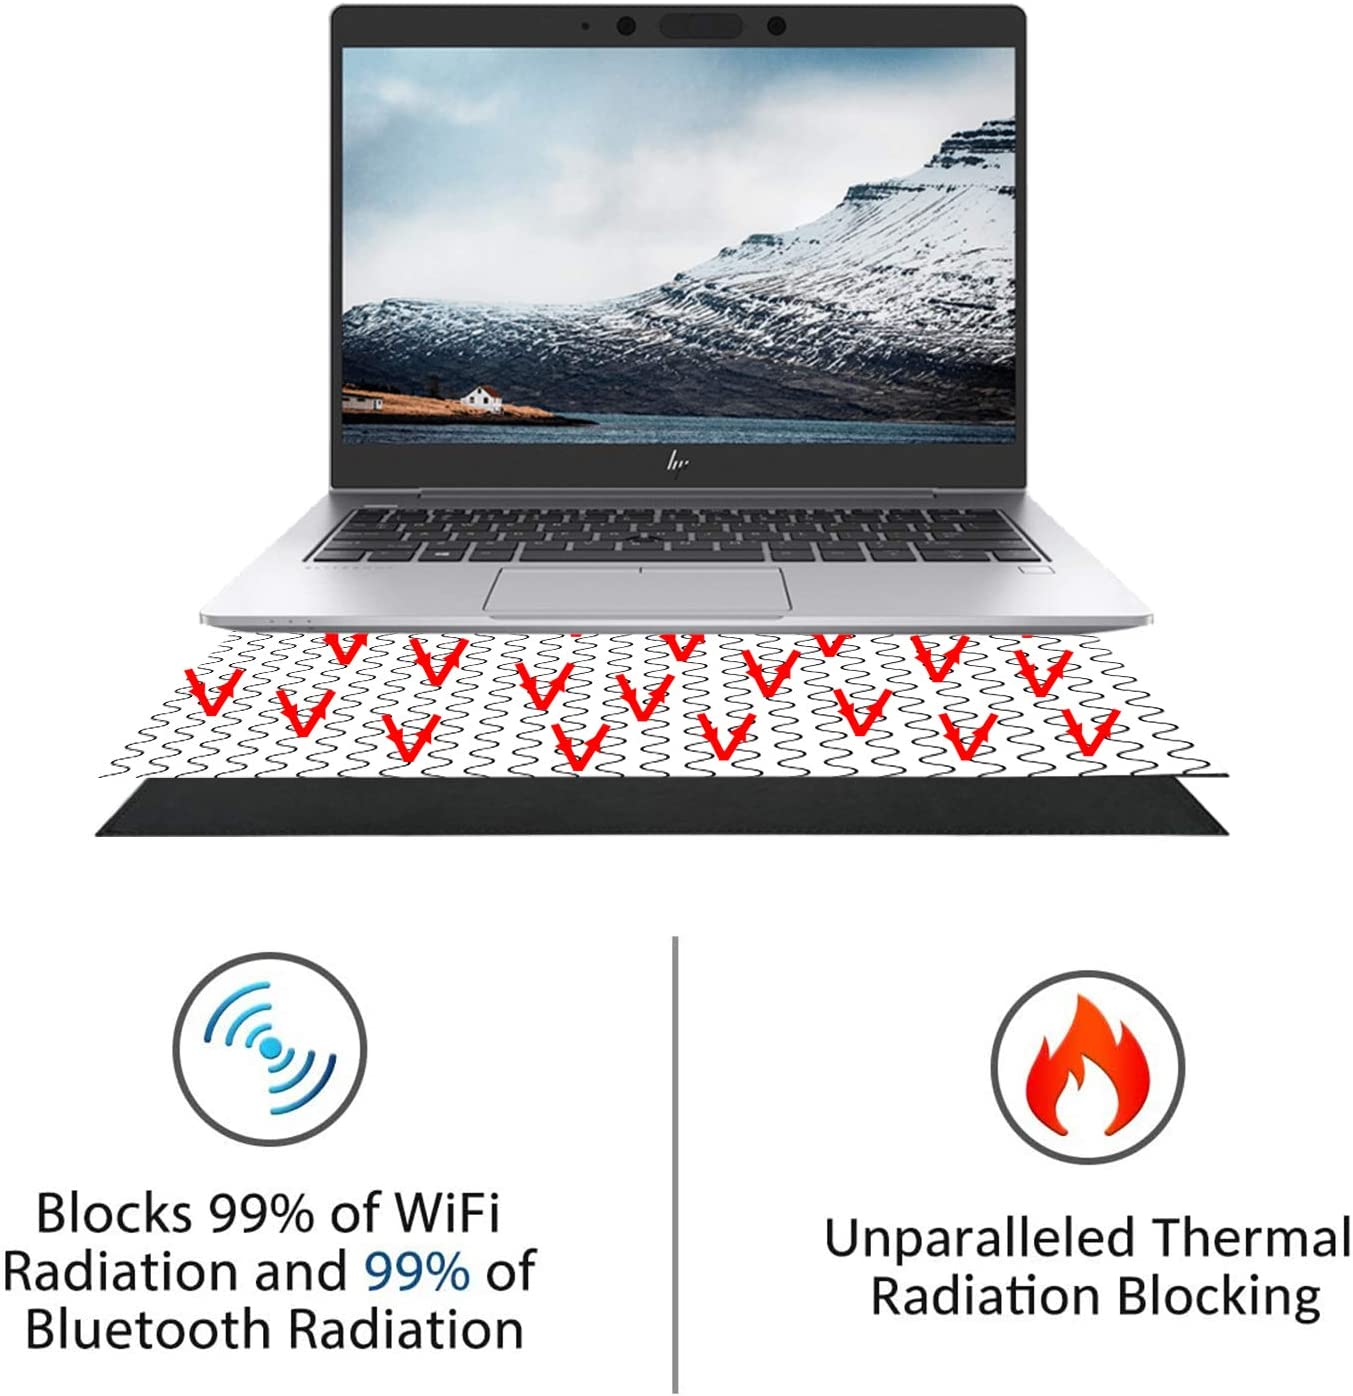 EMF Free to Protect Your Loved Ones 16 Multi-Layer Shielding Laptop Anti Radiation Protector /& EMF Blocker Radiation Shielding for Laptop iPad MacBook Mobiles Phones EMF Radiation Protection Pad